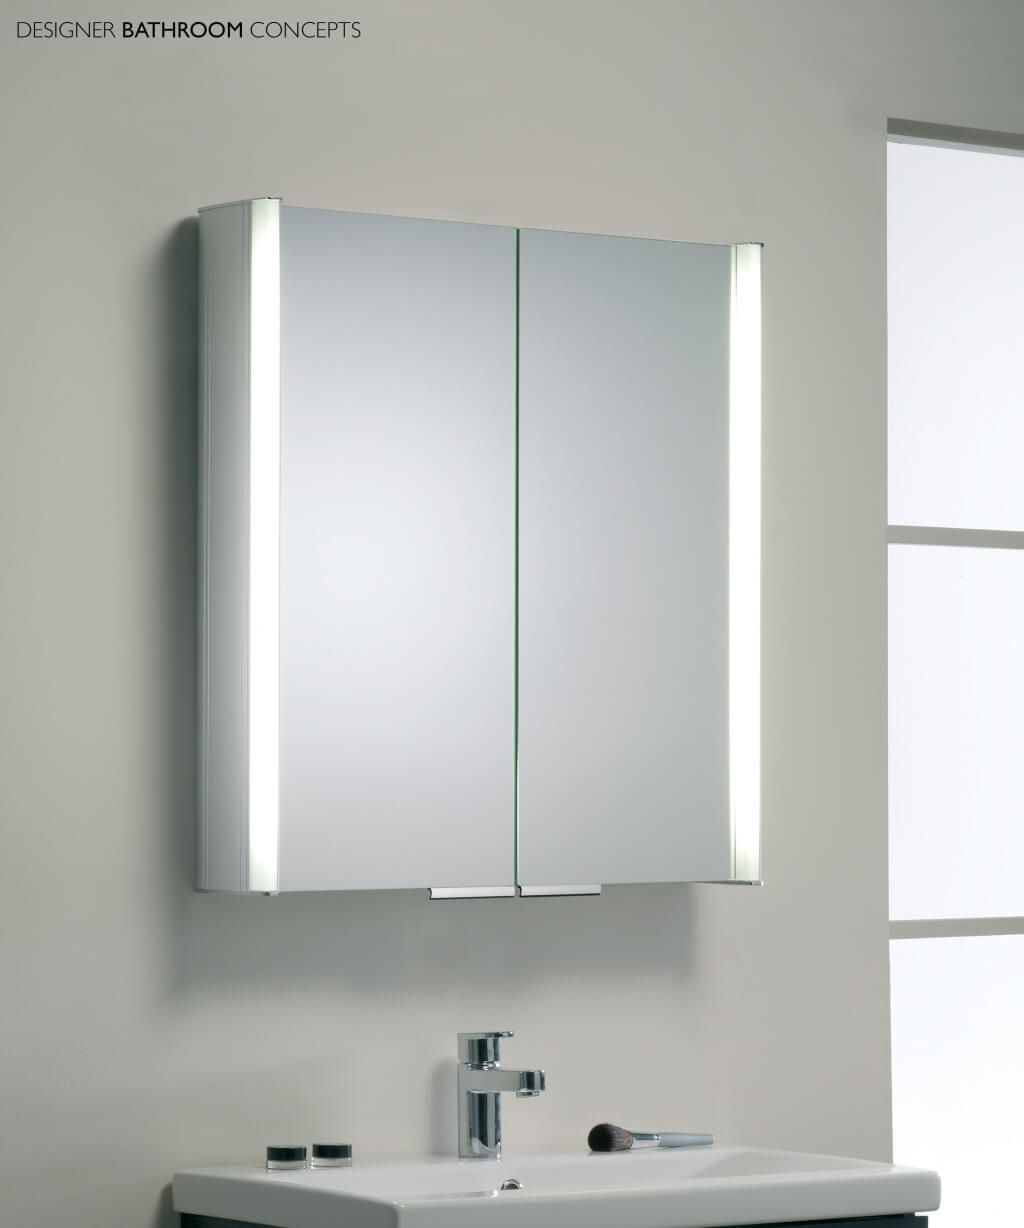 Slimline Bathroom Cabinet With Shaver Socket